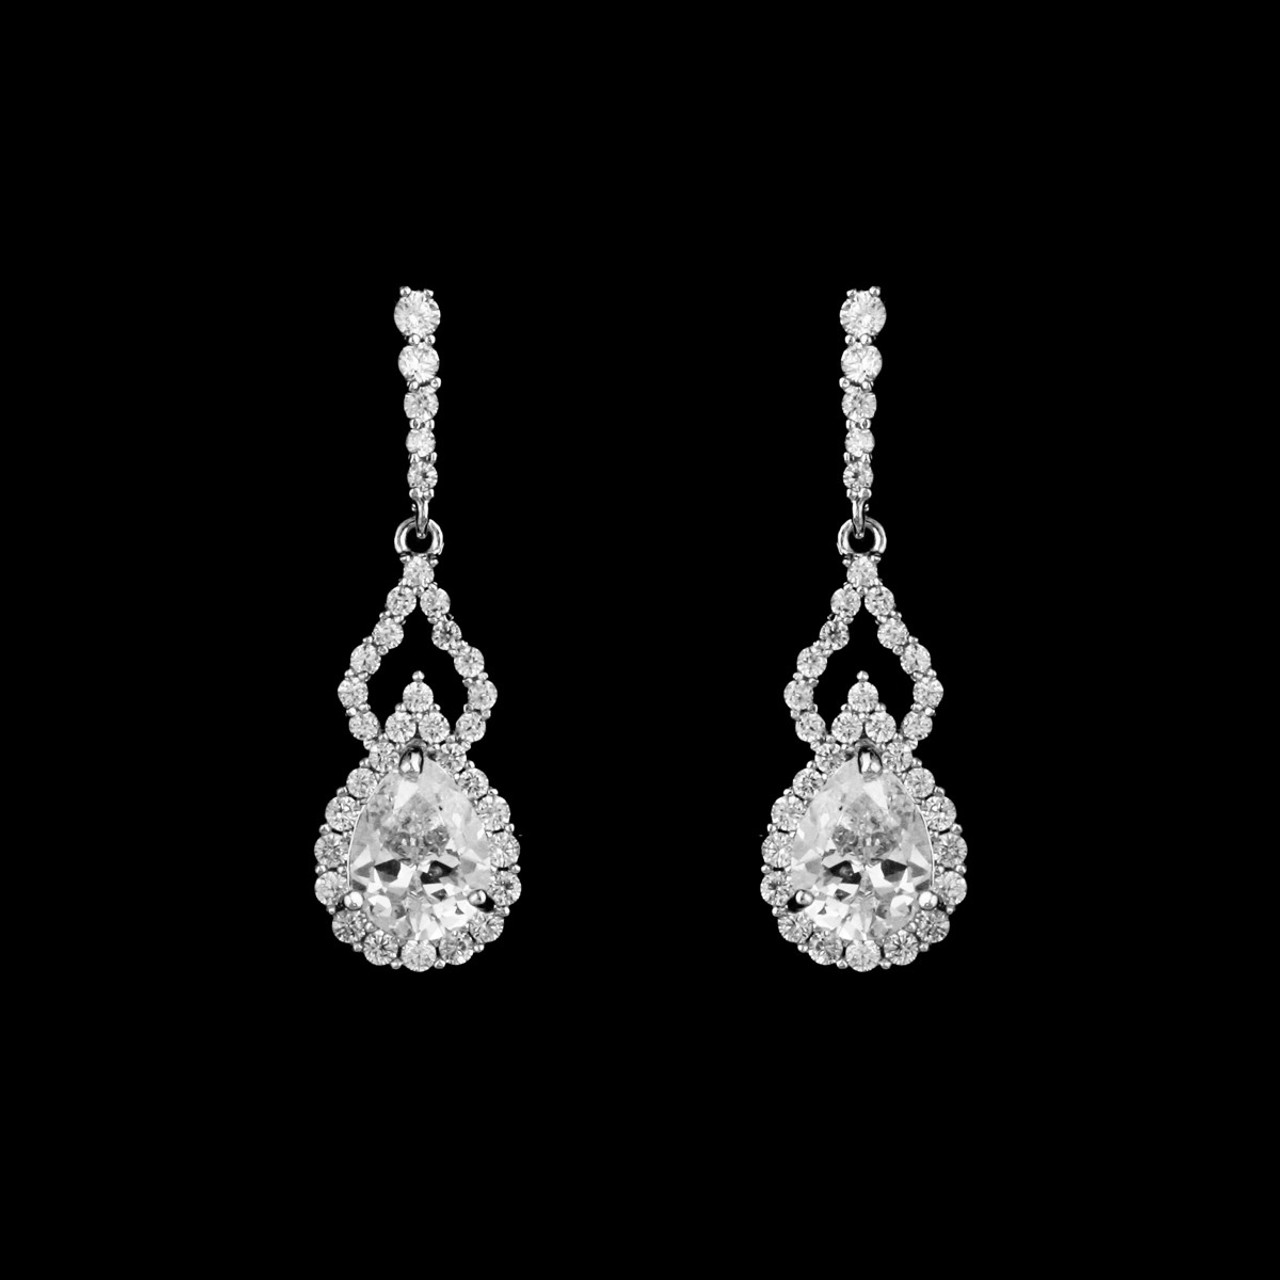 Formal Cubic Zirconia Earrings for Bridesmaids and Brides - #3616